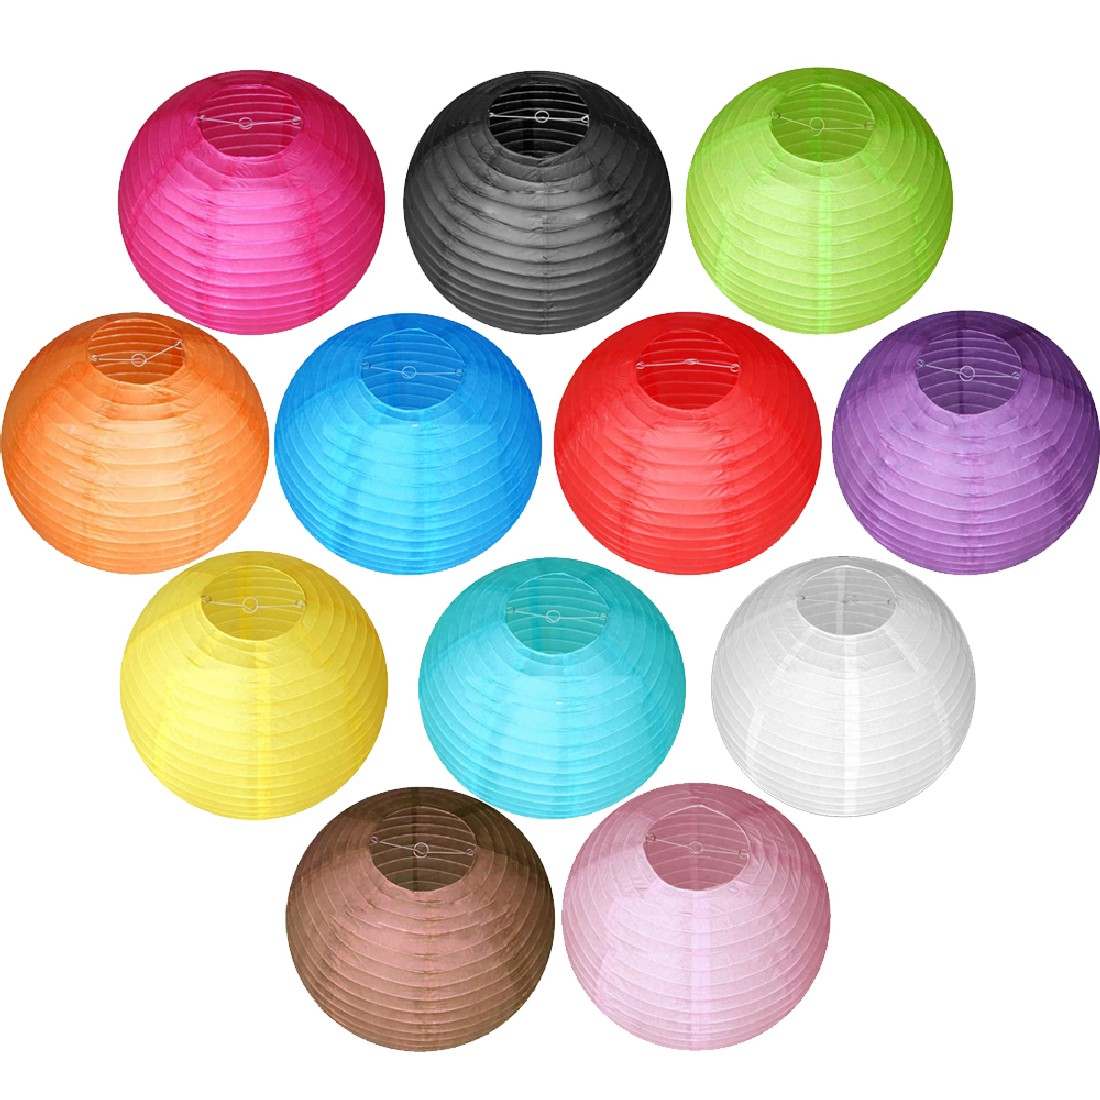 Hot Style 5pcs/lot 12 30cm Traditional Chinese Paper Lanterns Wedding Party supply Freeshipping<br><br>Aliexpress